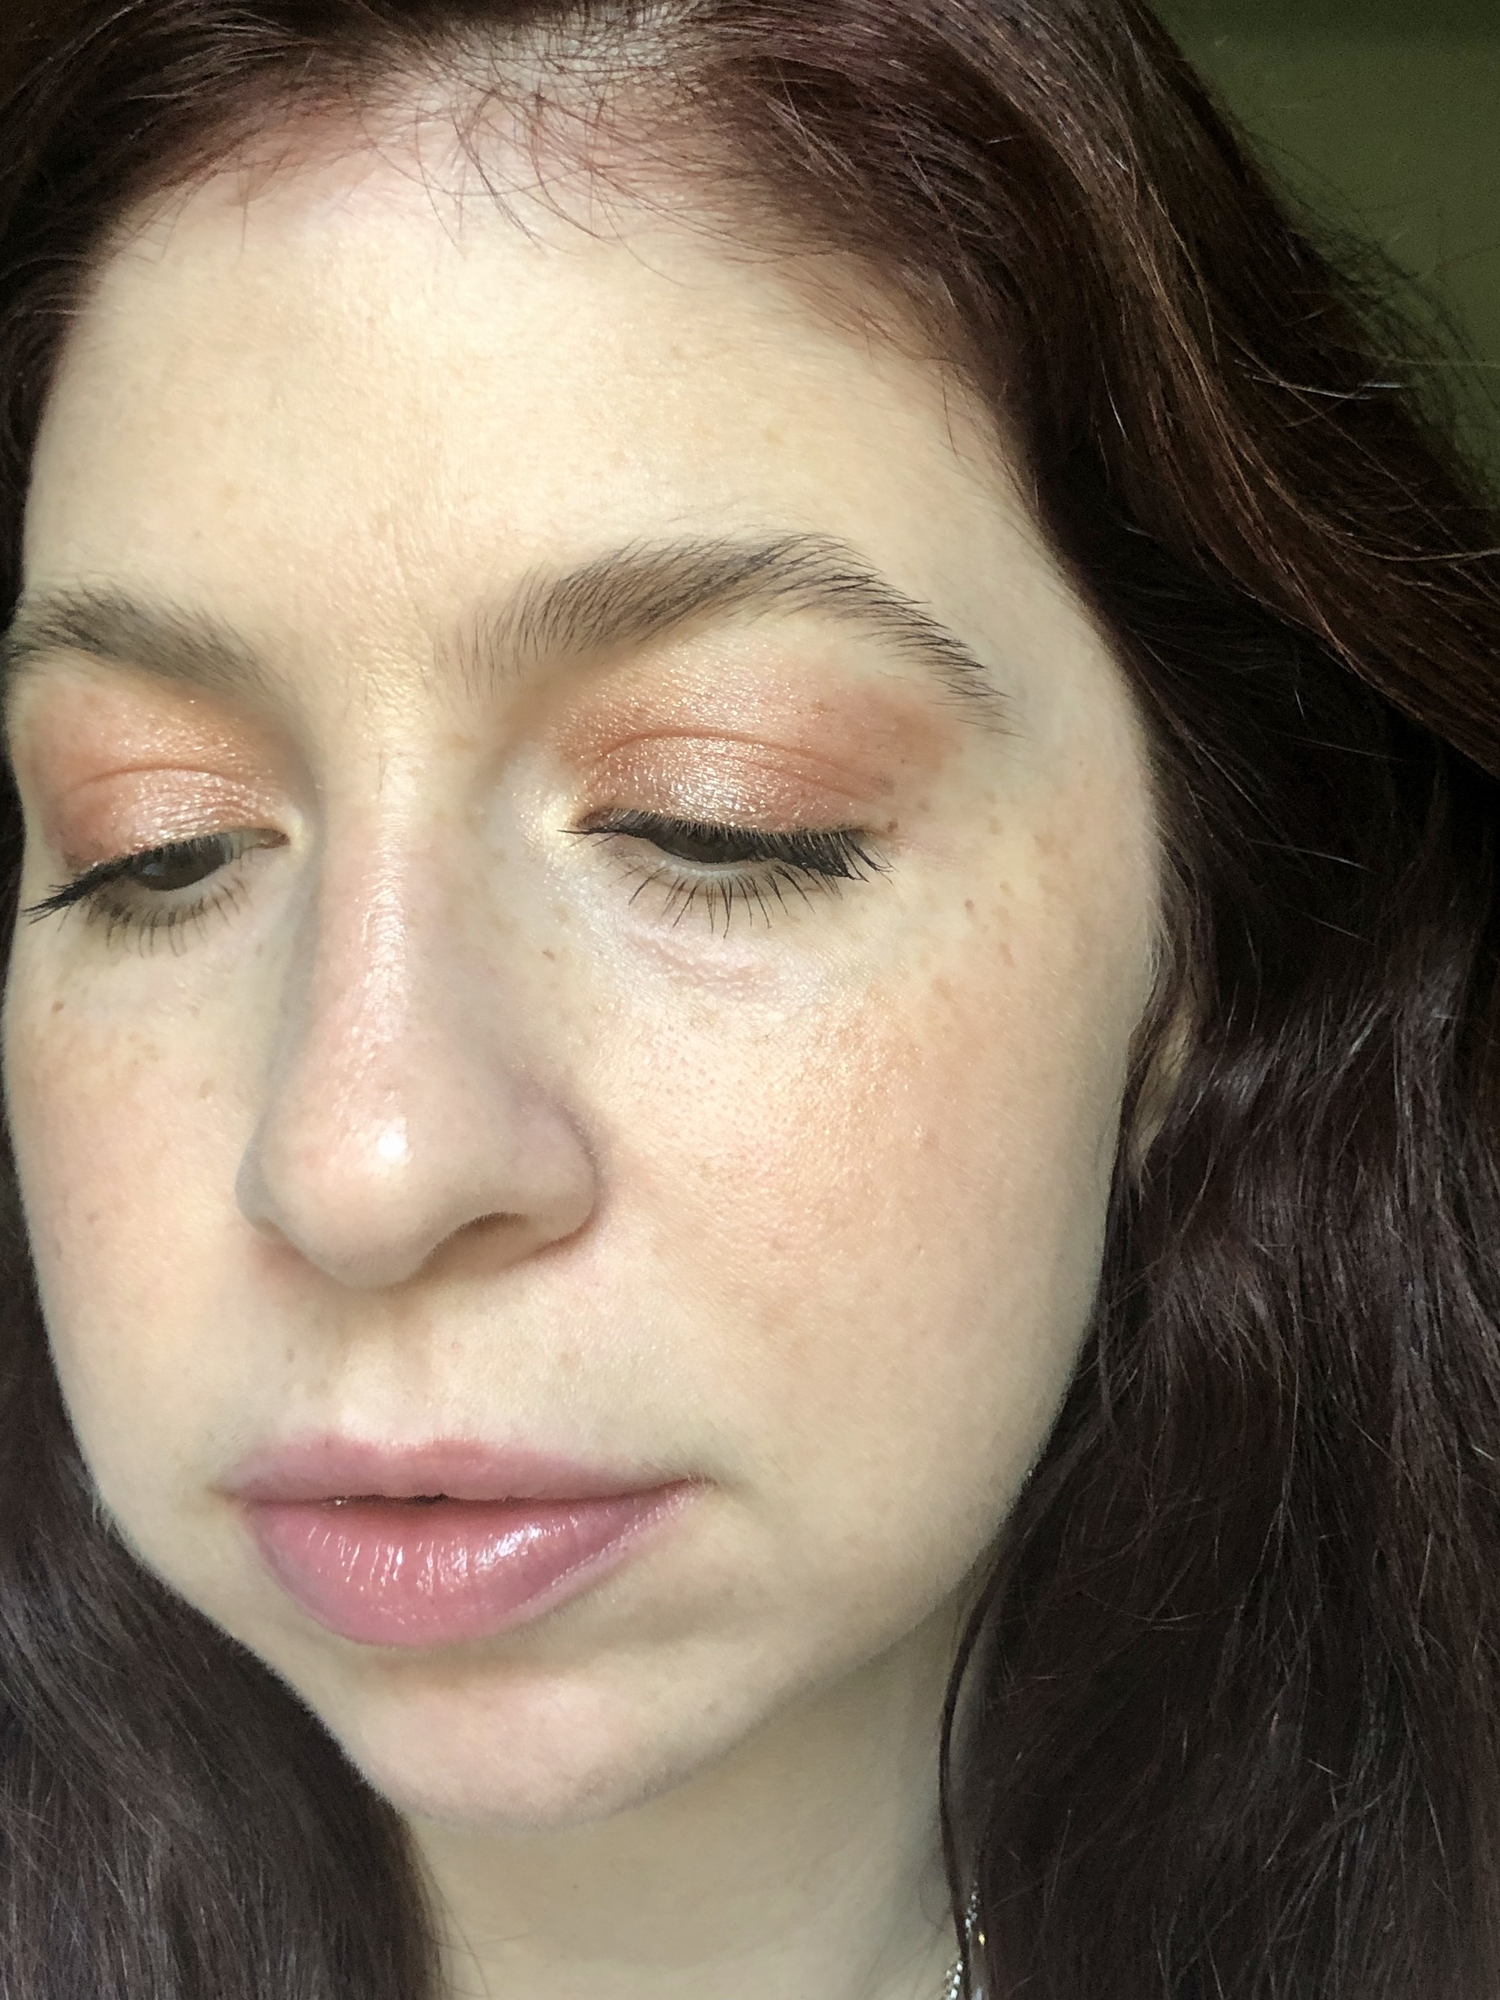 Showing off this rose gold liquid eyeshadow from an indie, female-owned brand